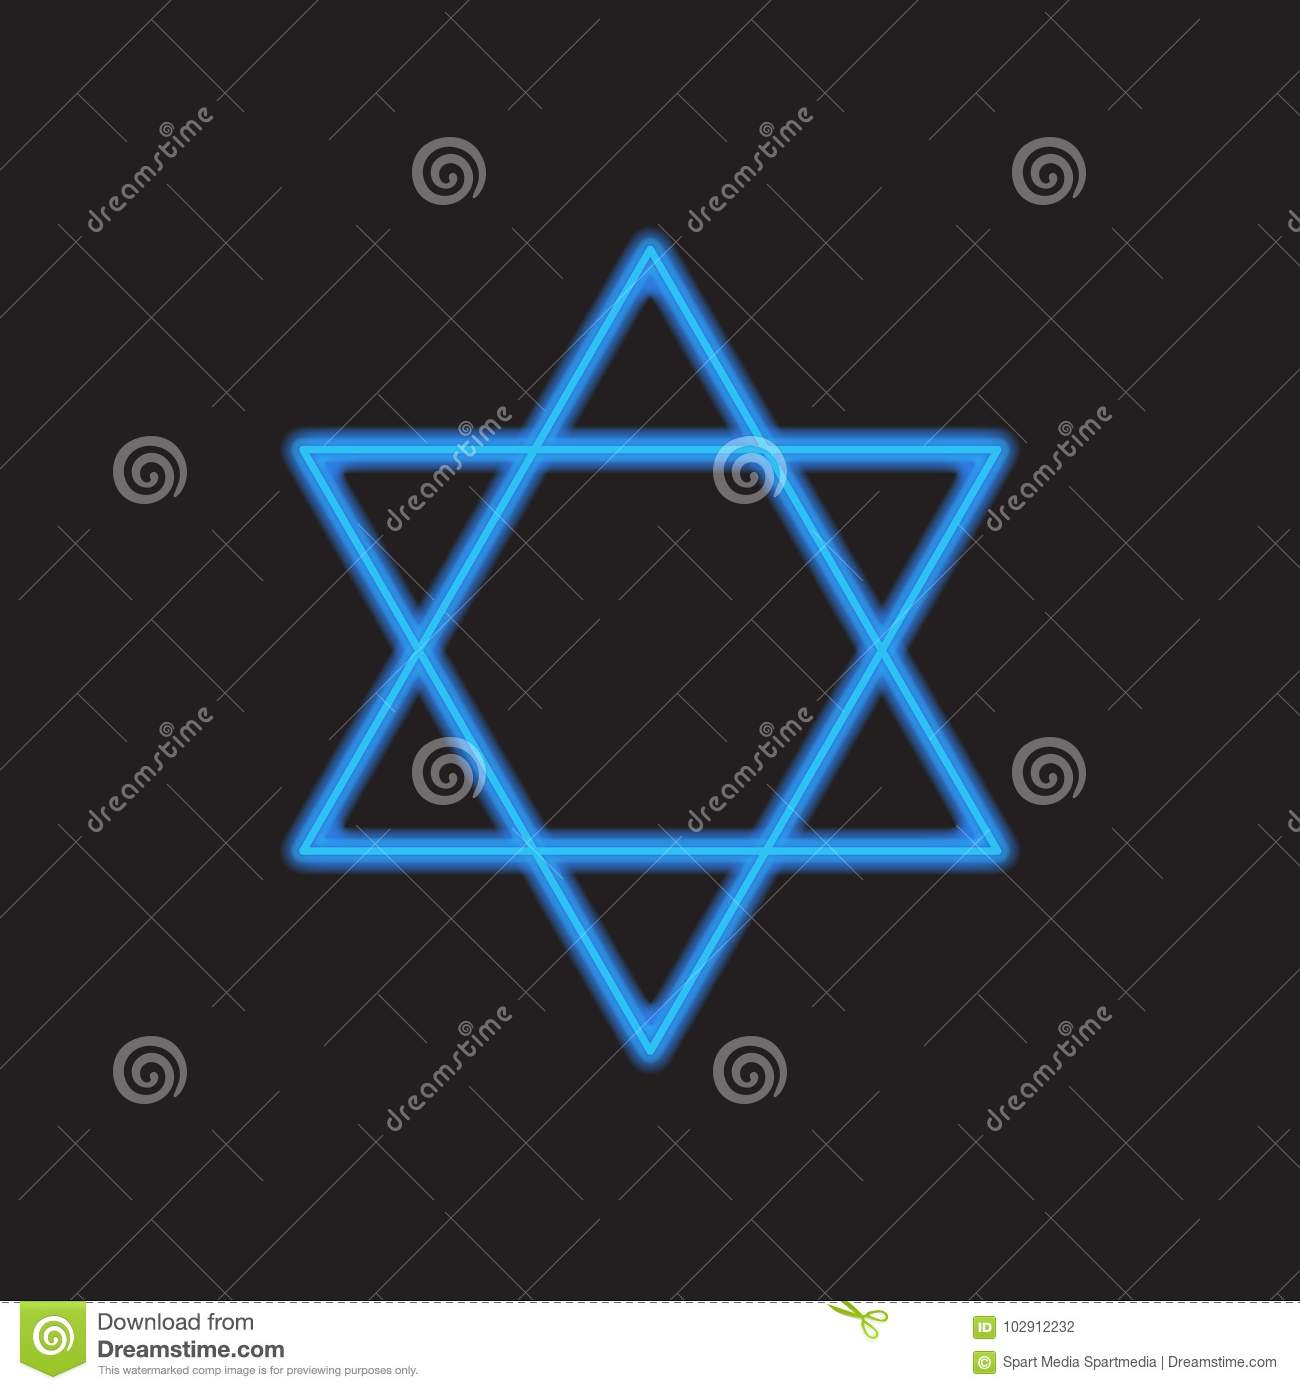 Neon star of David wallpaper with copy space for text. David`s star Jewish Holiday symbol blue colorDavid`s star Web sign blurred on dark background, ...